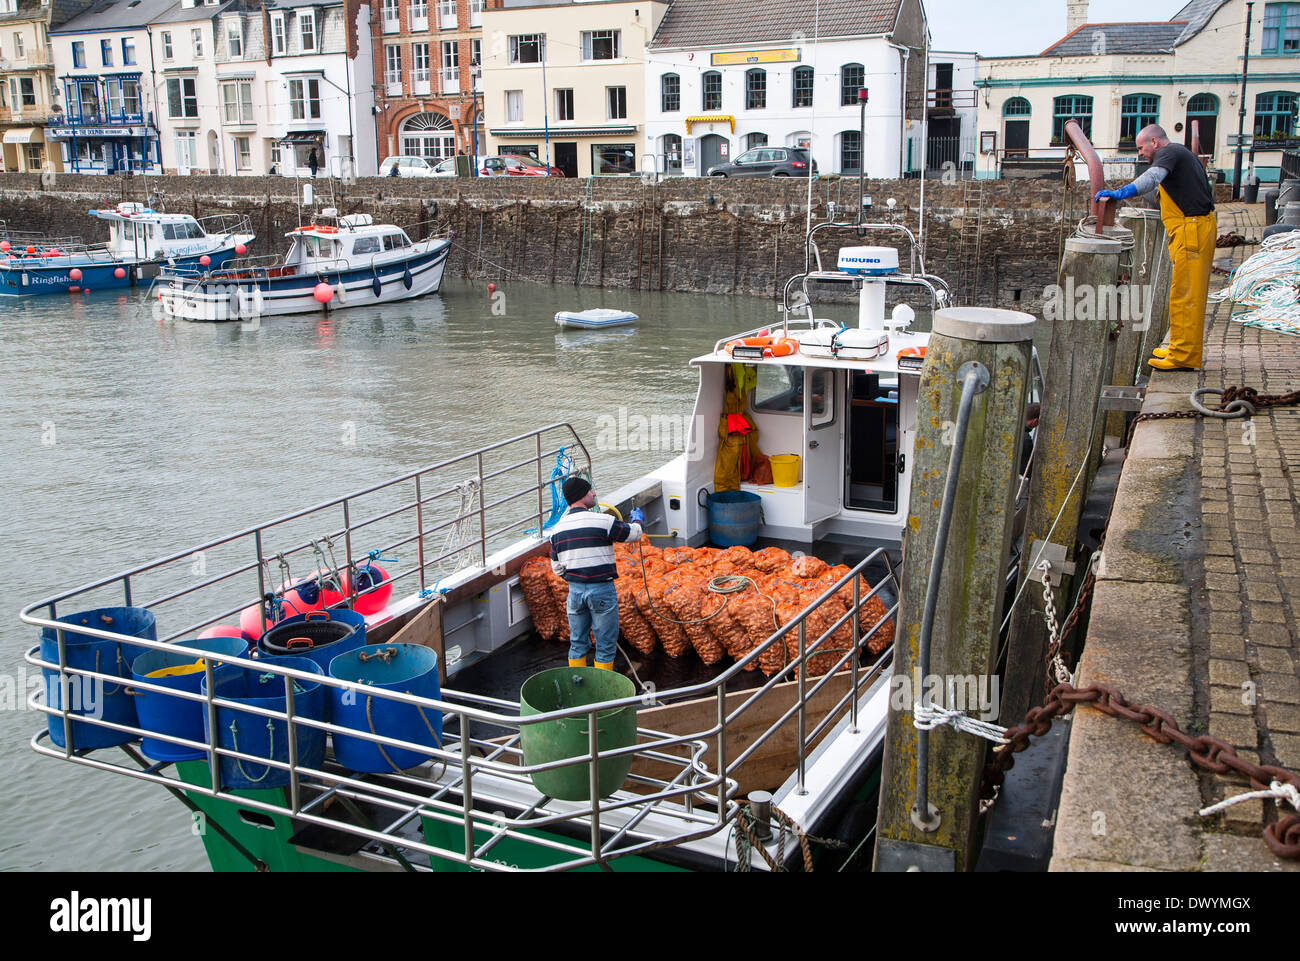 Unloading a catch of shellfish from a small fishing boat in the harbour, Ilfracombe, north Devon, England - Stock Image